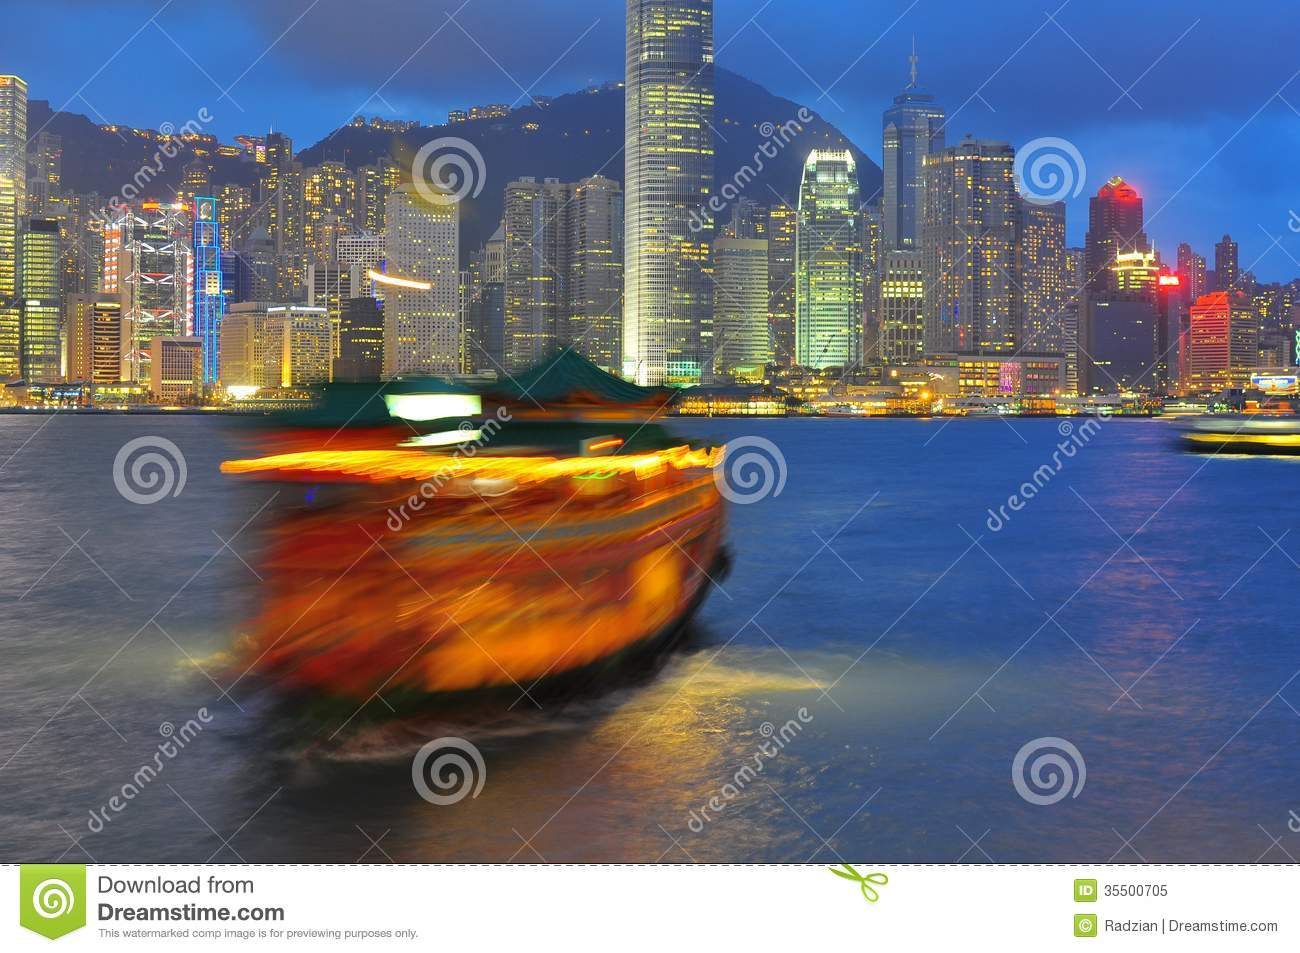 Victoria Harbour of Hong Kong